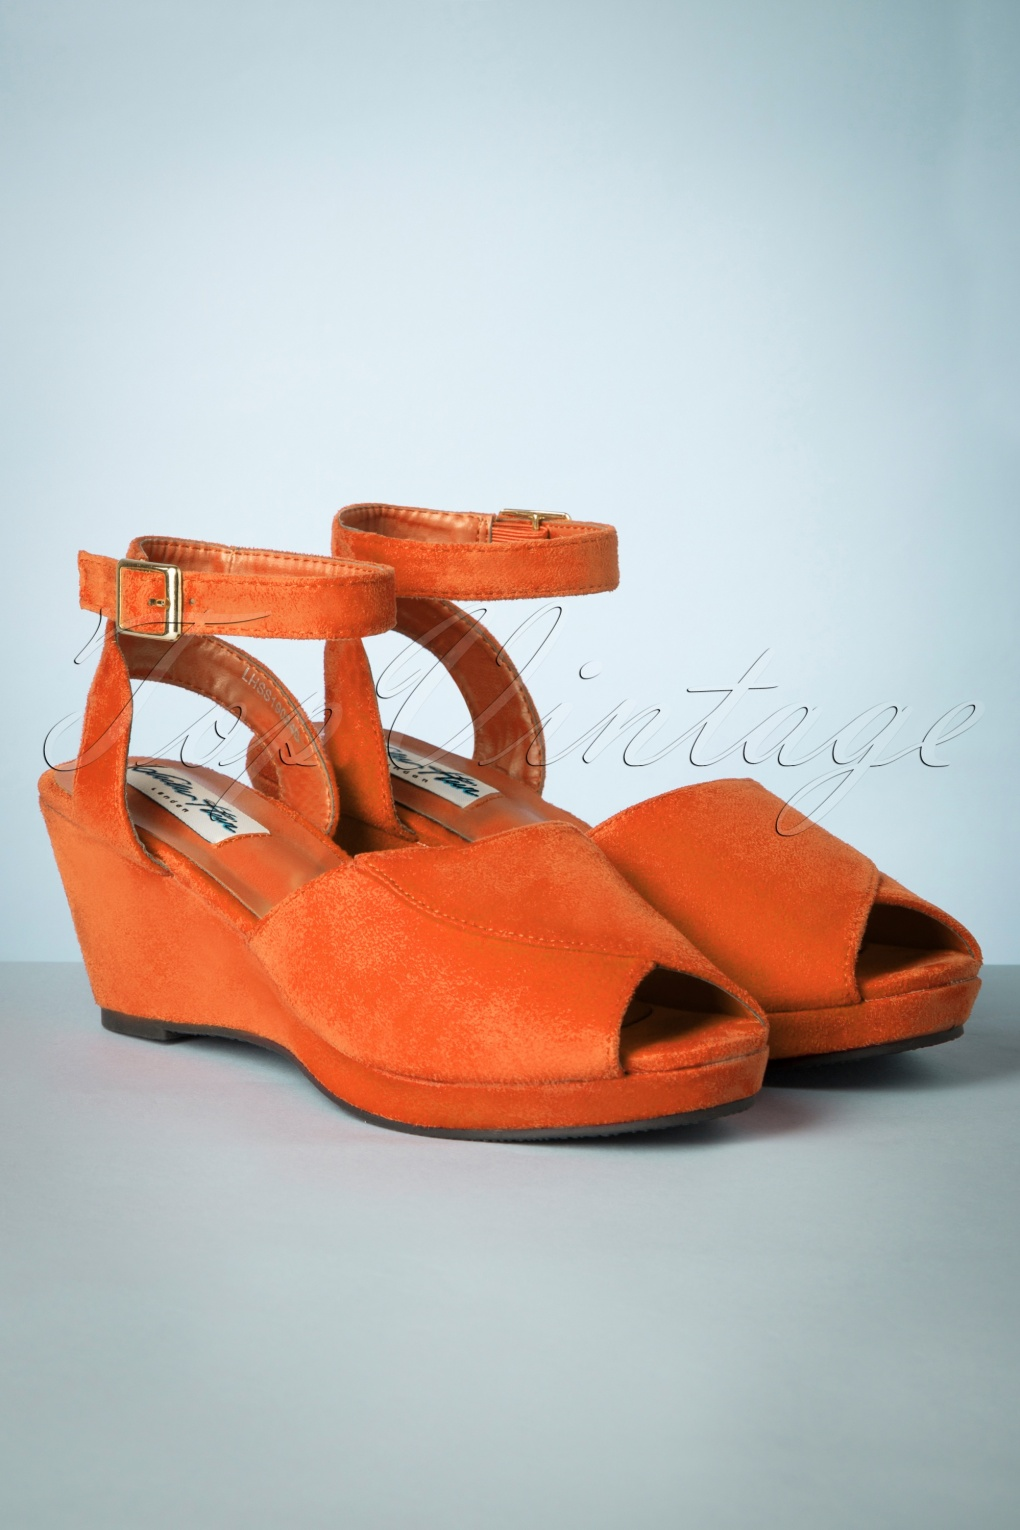 1960s Style Dresses, Clothing, Shoes UK 60s Simona Wedge Sandals in Orange £33.94 AT vintagedancer.com